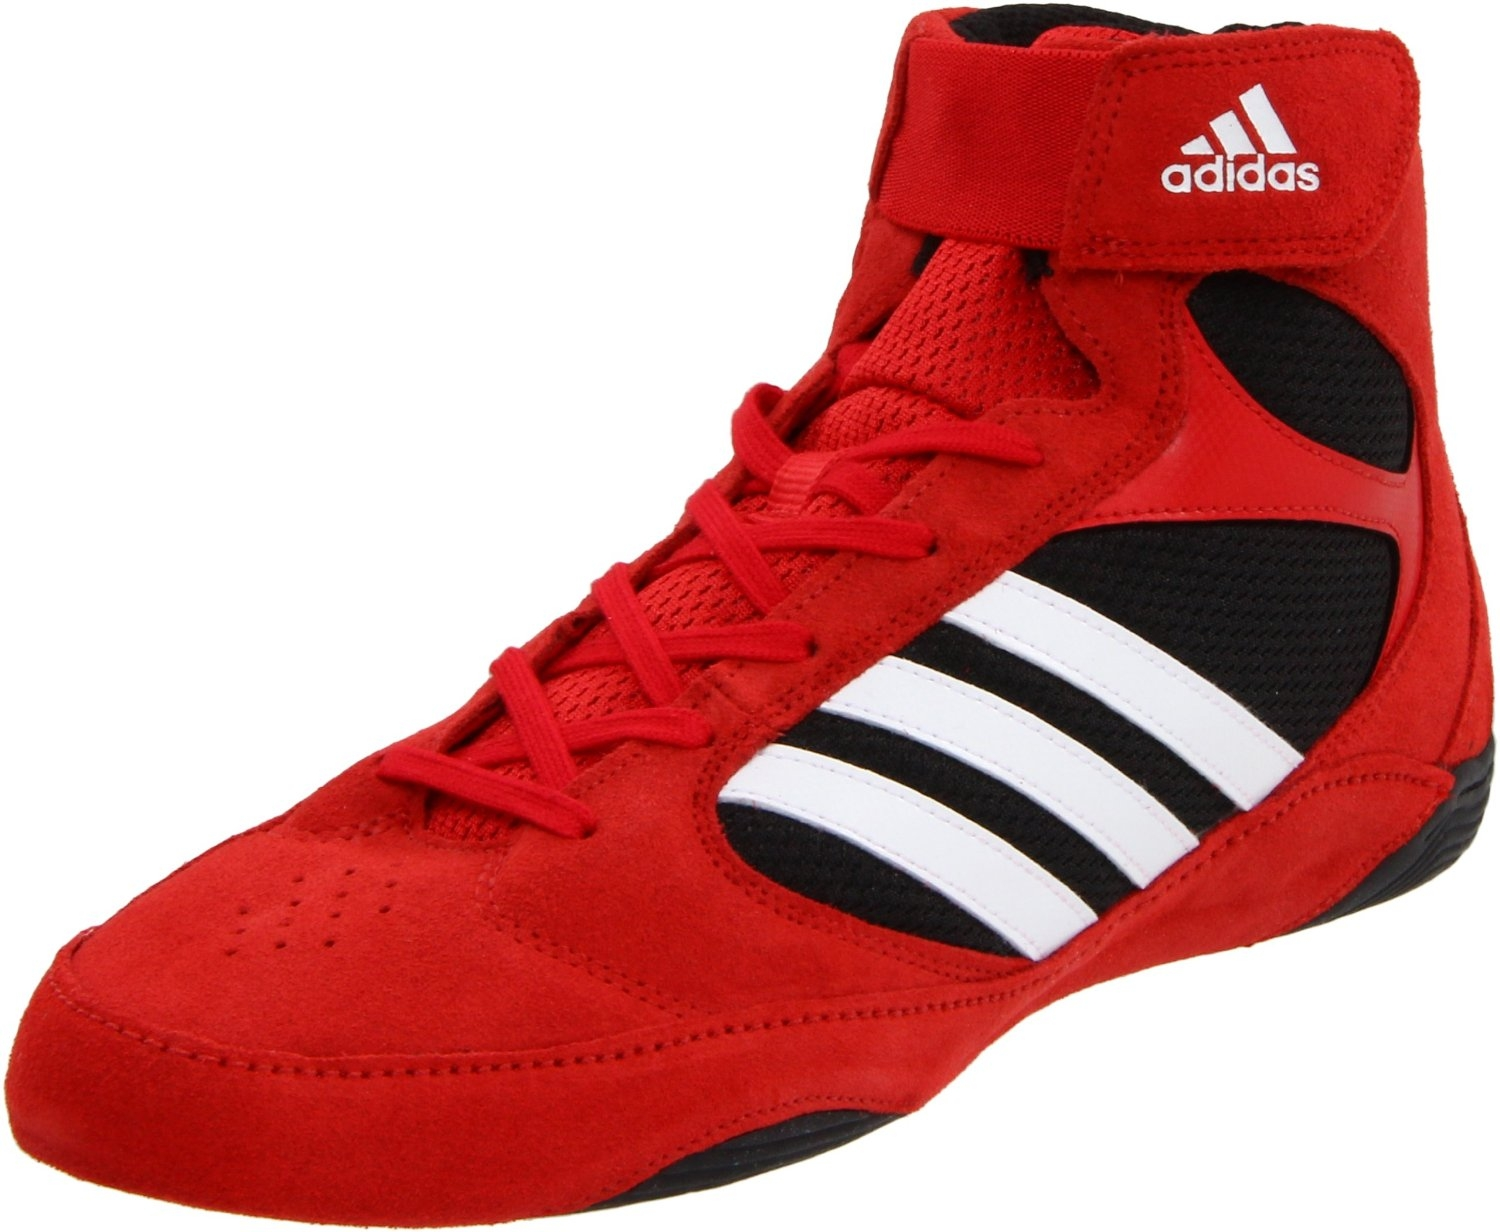 6479e5c3dd77 Adidas Pretereo 2 Wrestling Shoes - Red White Black